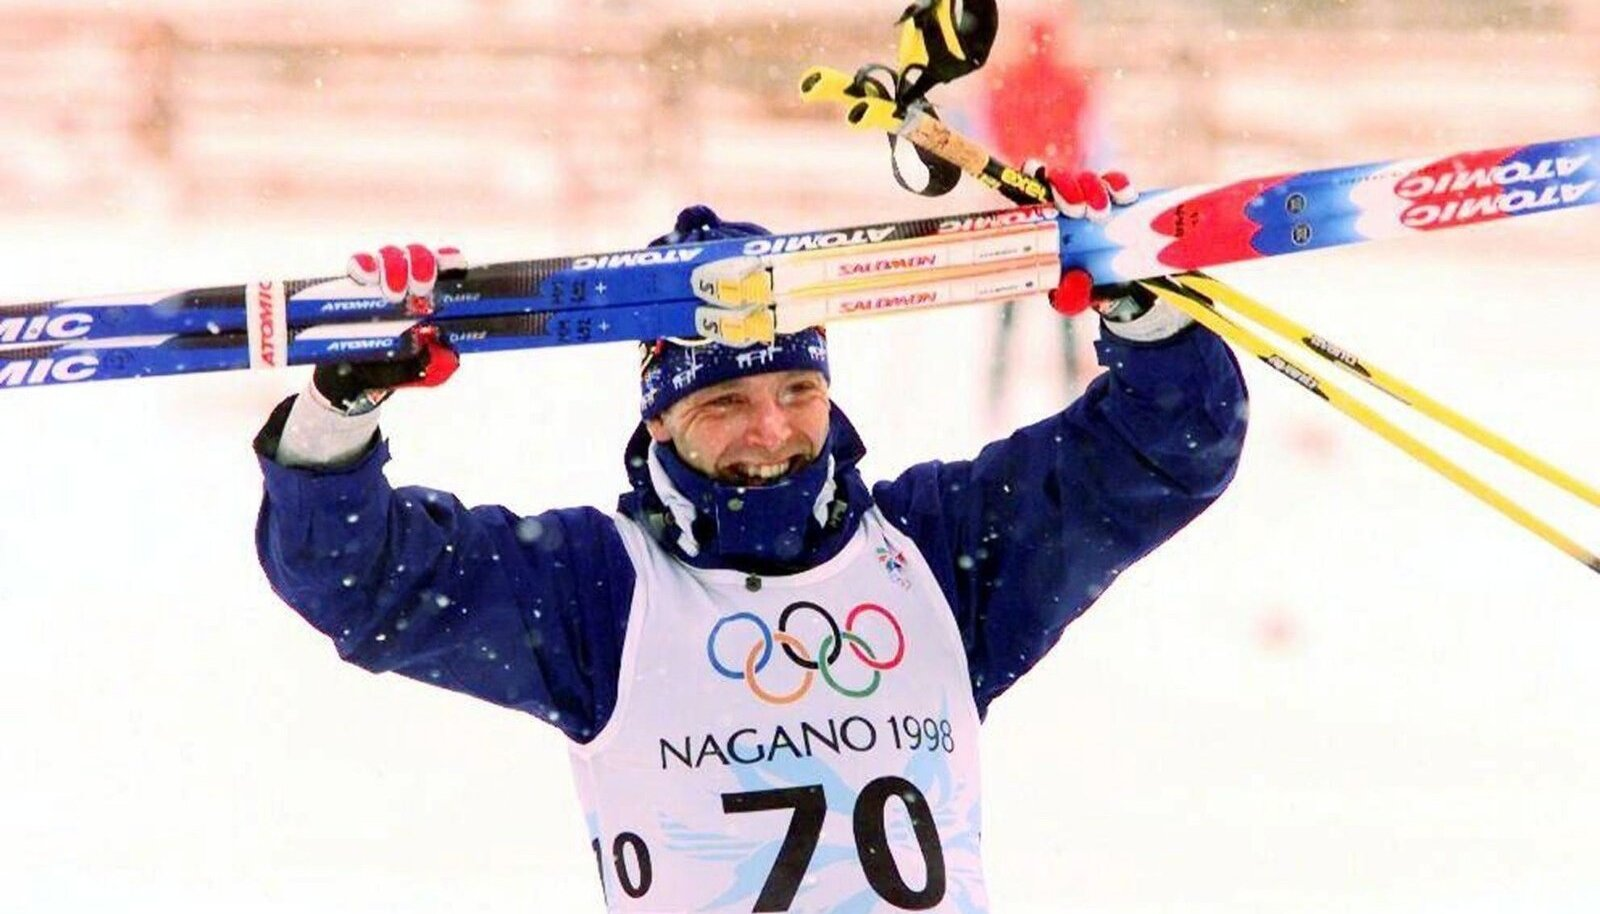 Finnish skier Mika Myllyla is seen after winning the 30km cross country race at the Nagano Olympics